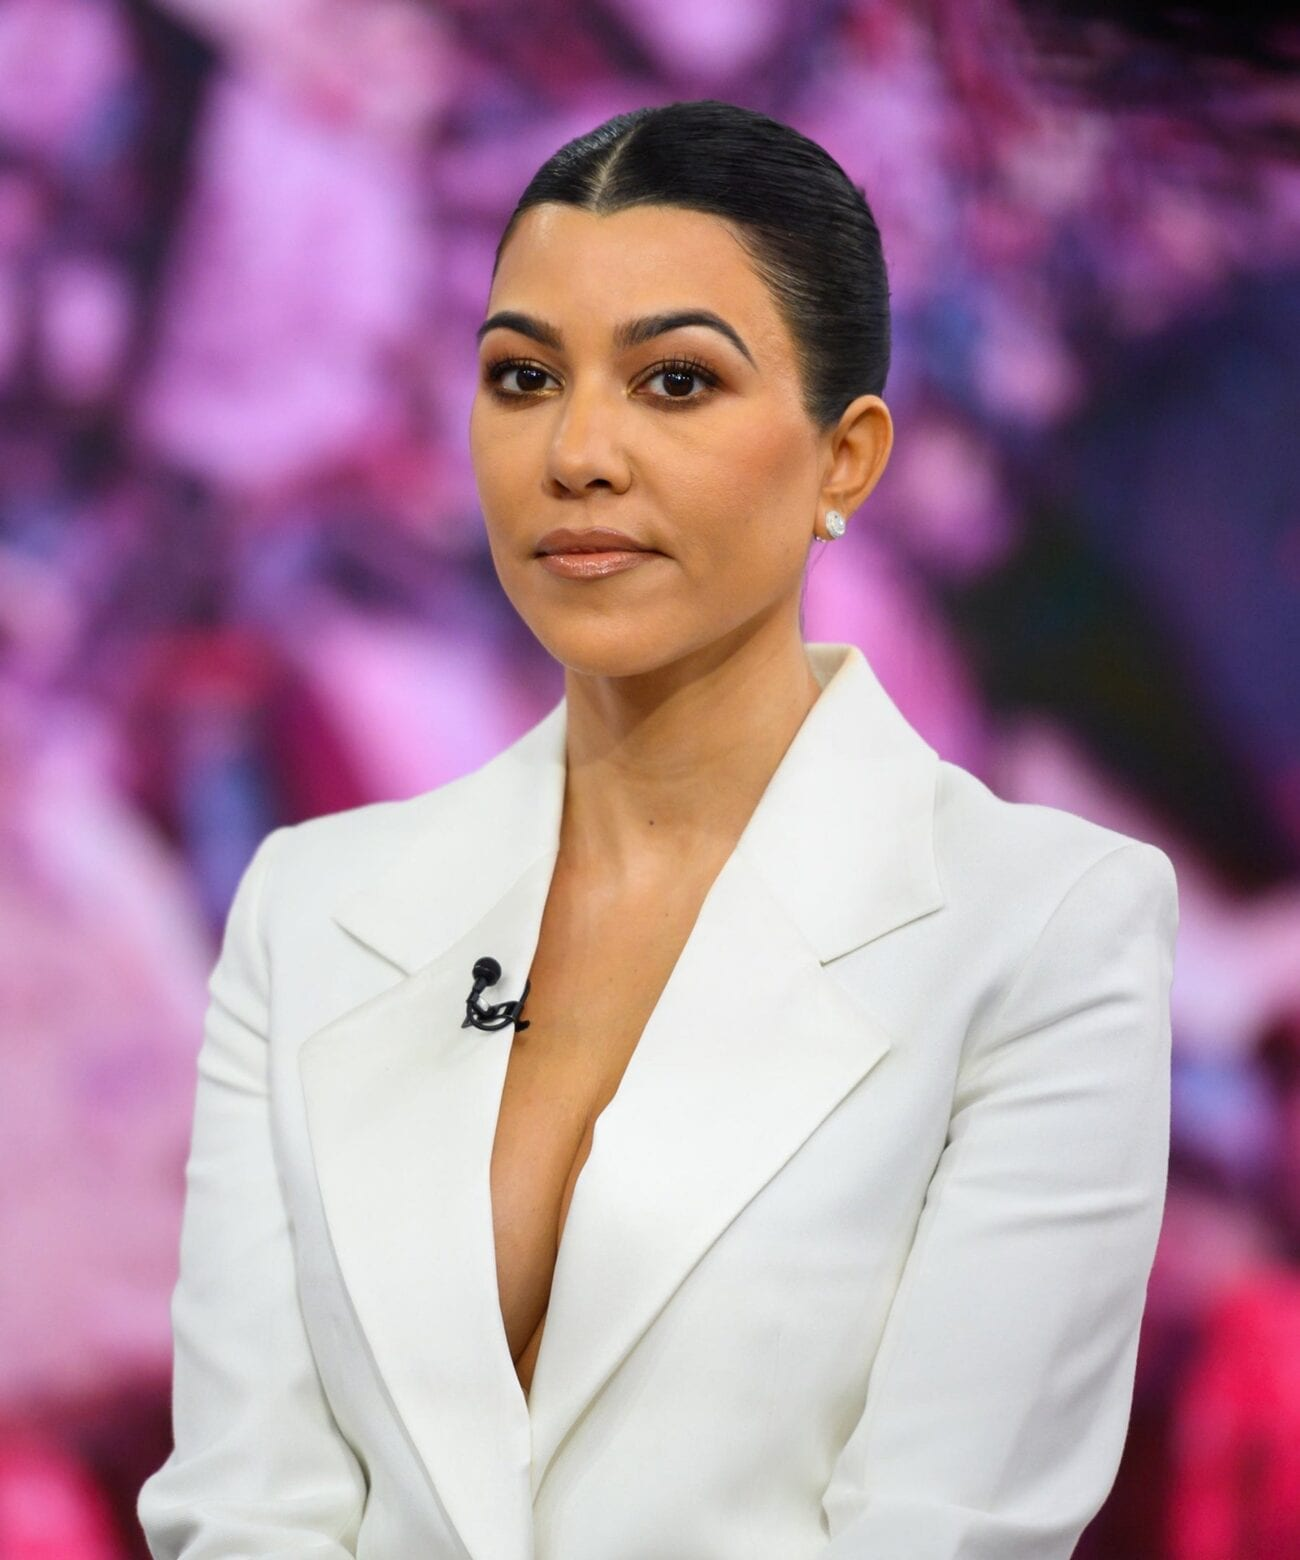 The iconic reality TV show 'Keeping Up With the Kardashians' ended. Why is Instagram dragging Kourtney Kardashian now?